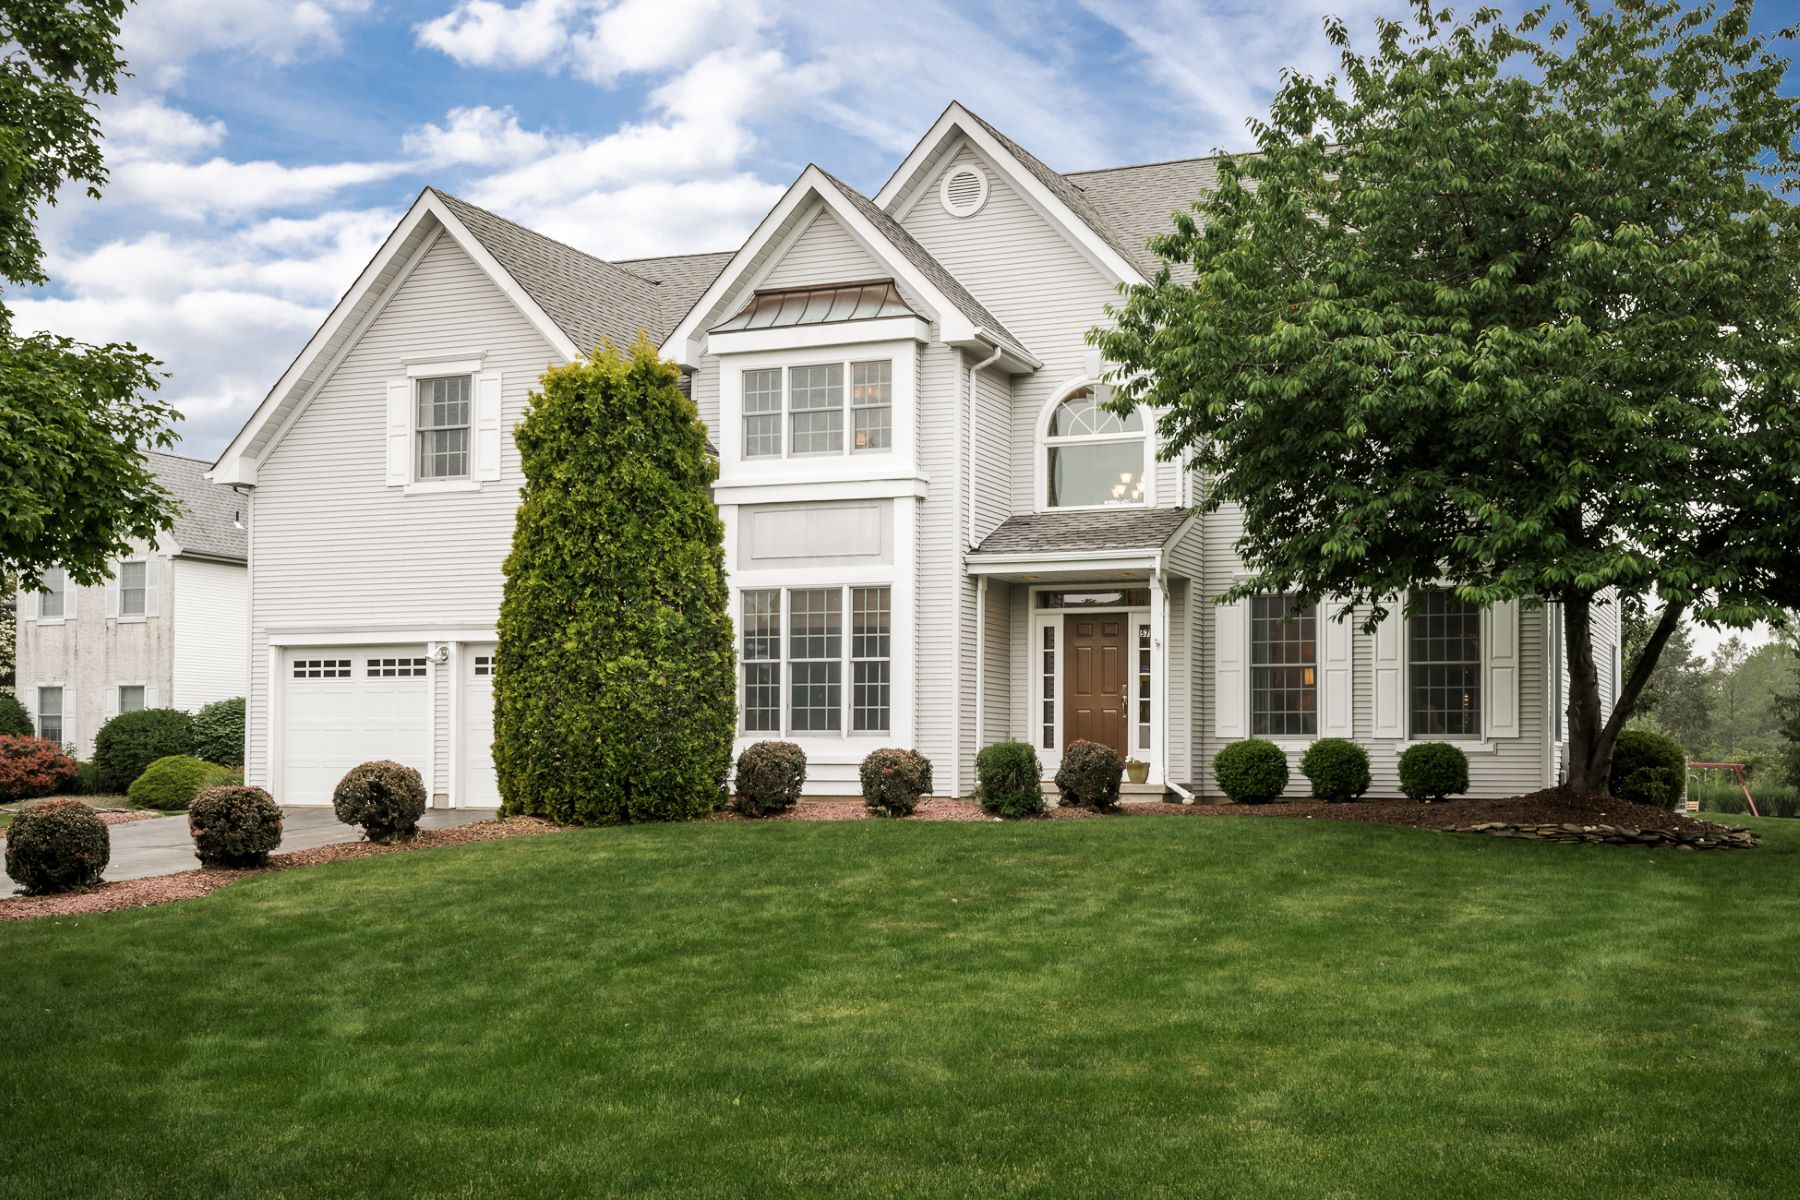 Villa per Vendita alle ore Exquisite Remodel Adds Sparkle to Sunlit Colonial - Plainsboro Township 57 Kinglet Drive South Plainsboro, New Jersey 08536 Stati UnitiIn/In giro: Plainsboro Township